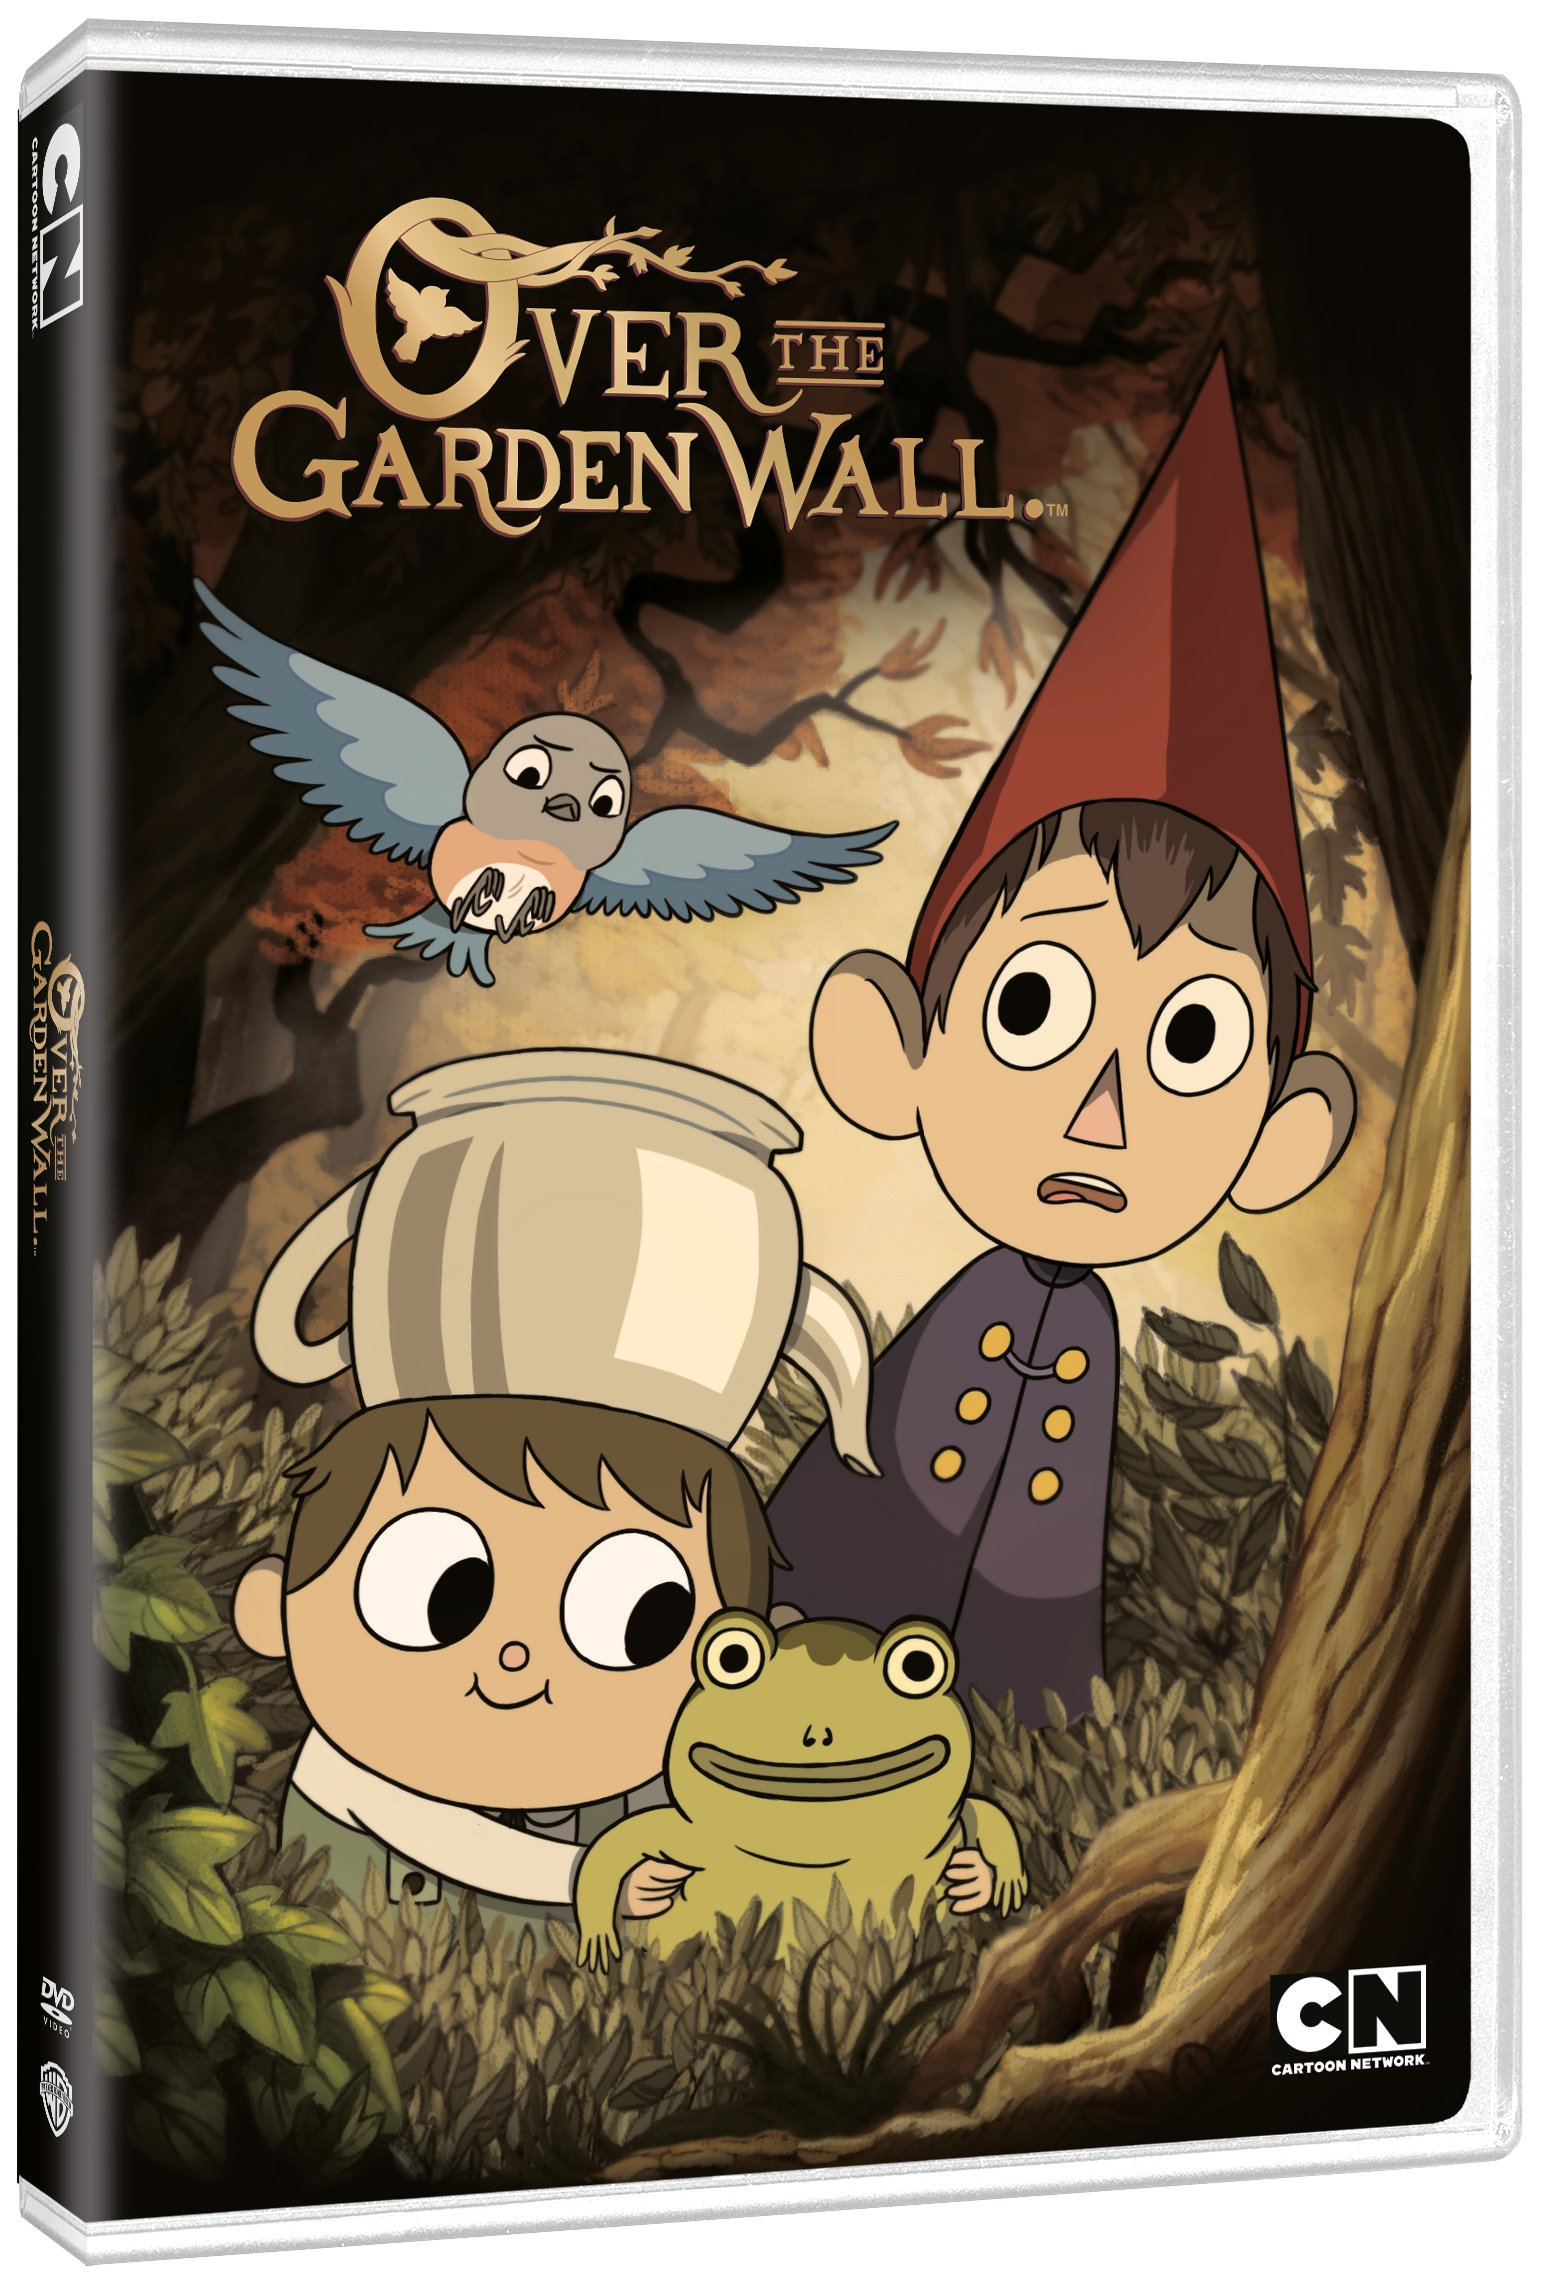 otgw dvd cover - Over The Garden Wall Merchandise